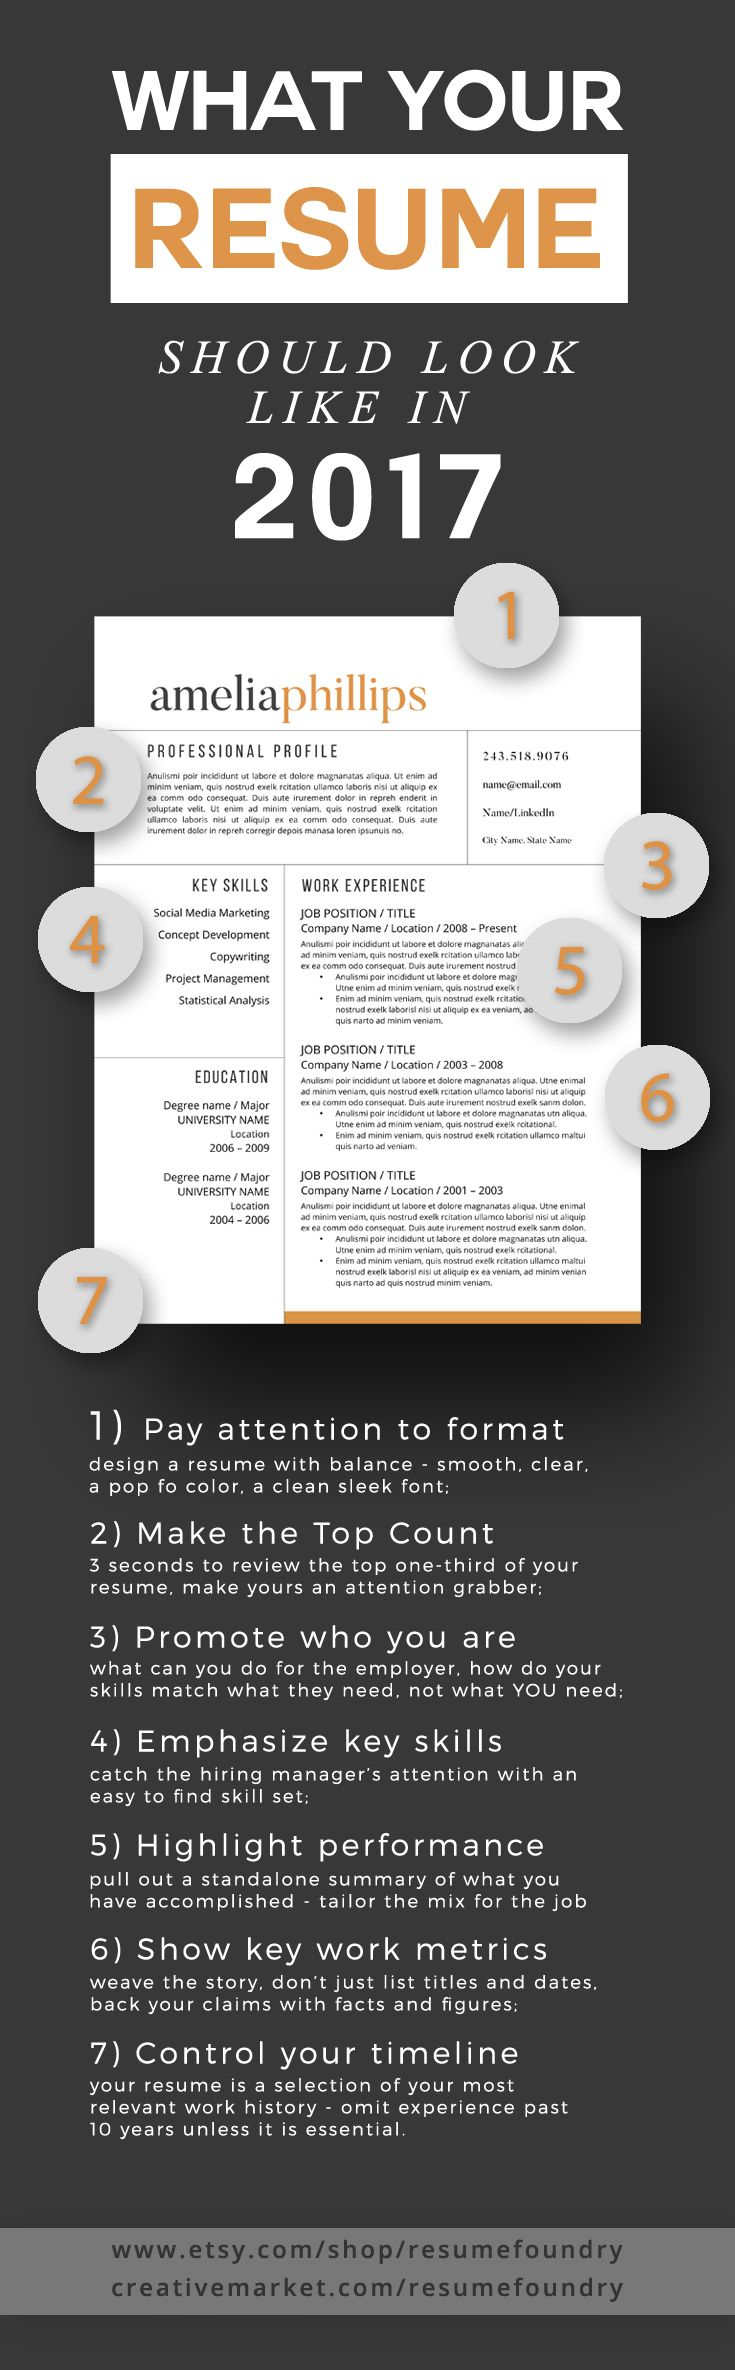 A Job Resume Magnificent Best 107 Job Search Images On Pinterest  Resume Advertising And .